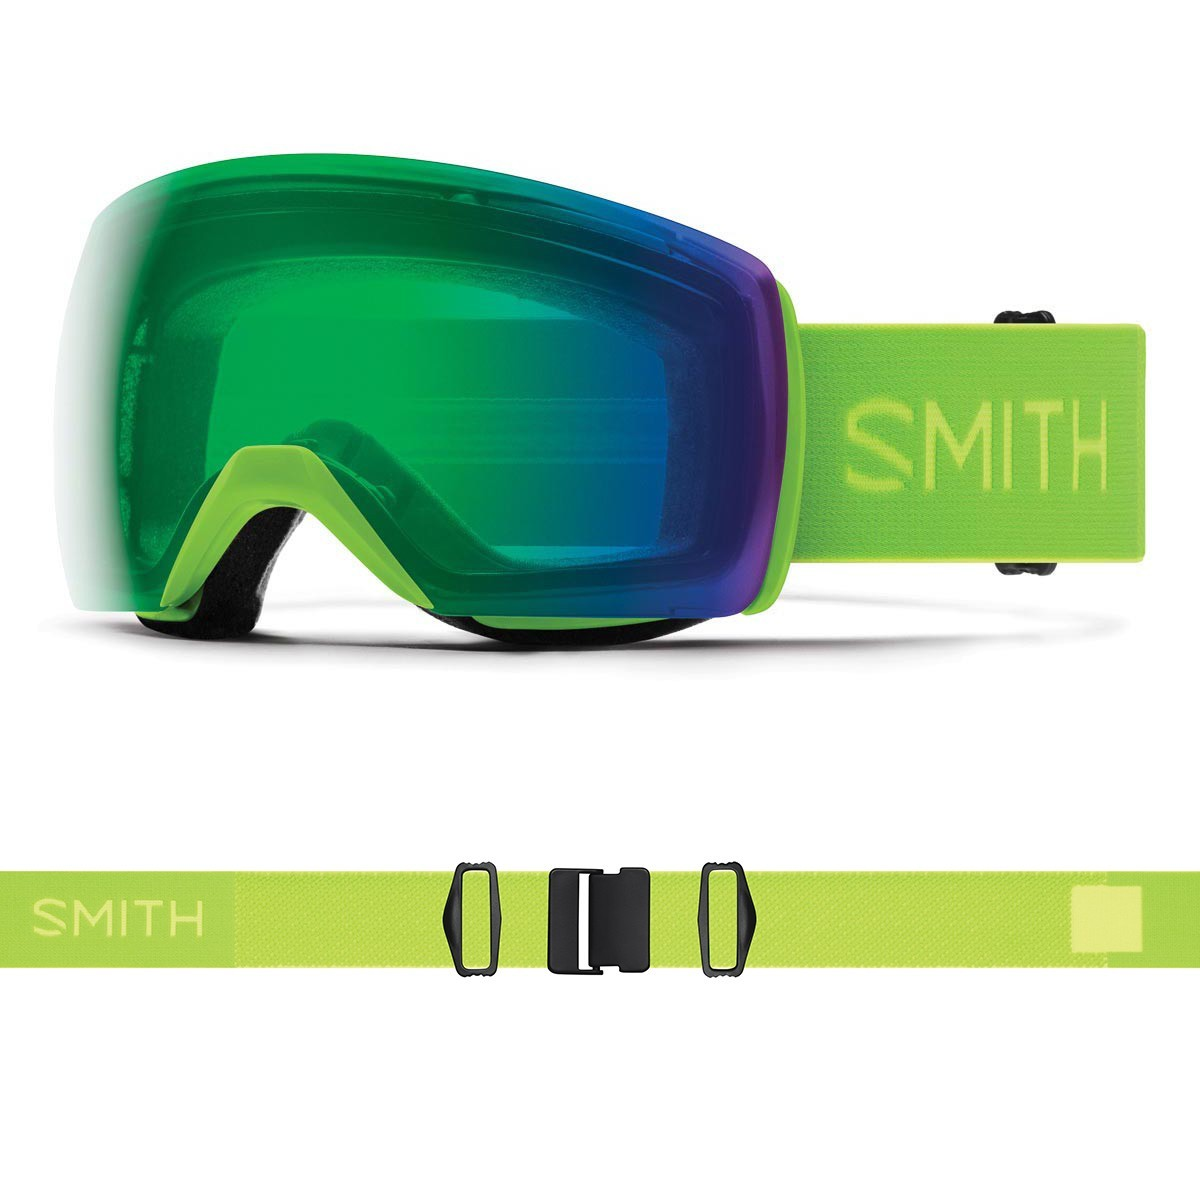 SMITH SKYLINE XL limelight | S2 CHROMAPOP Everyday Green Mirror - Изображение - AQUAMATRIX